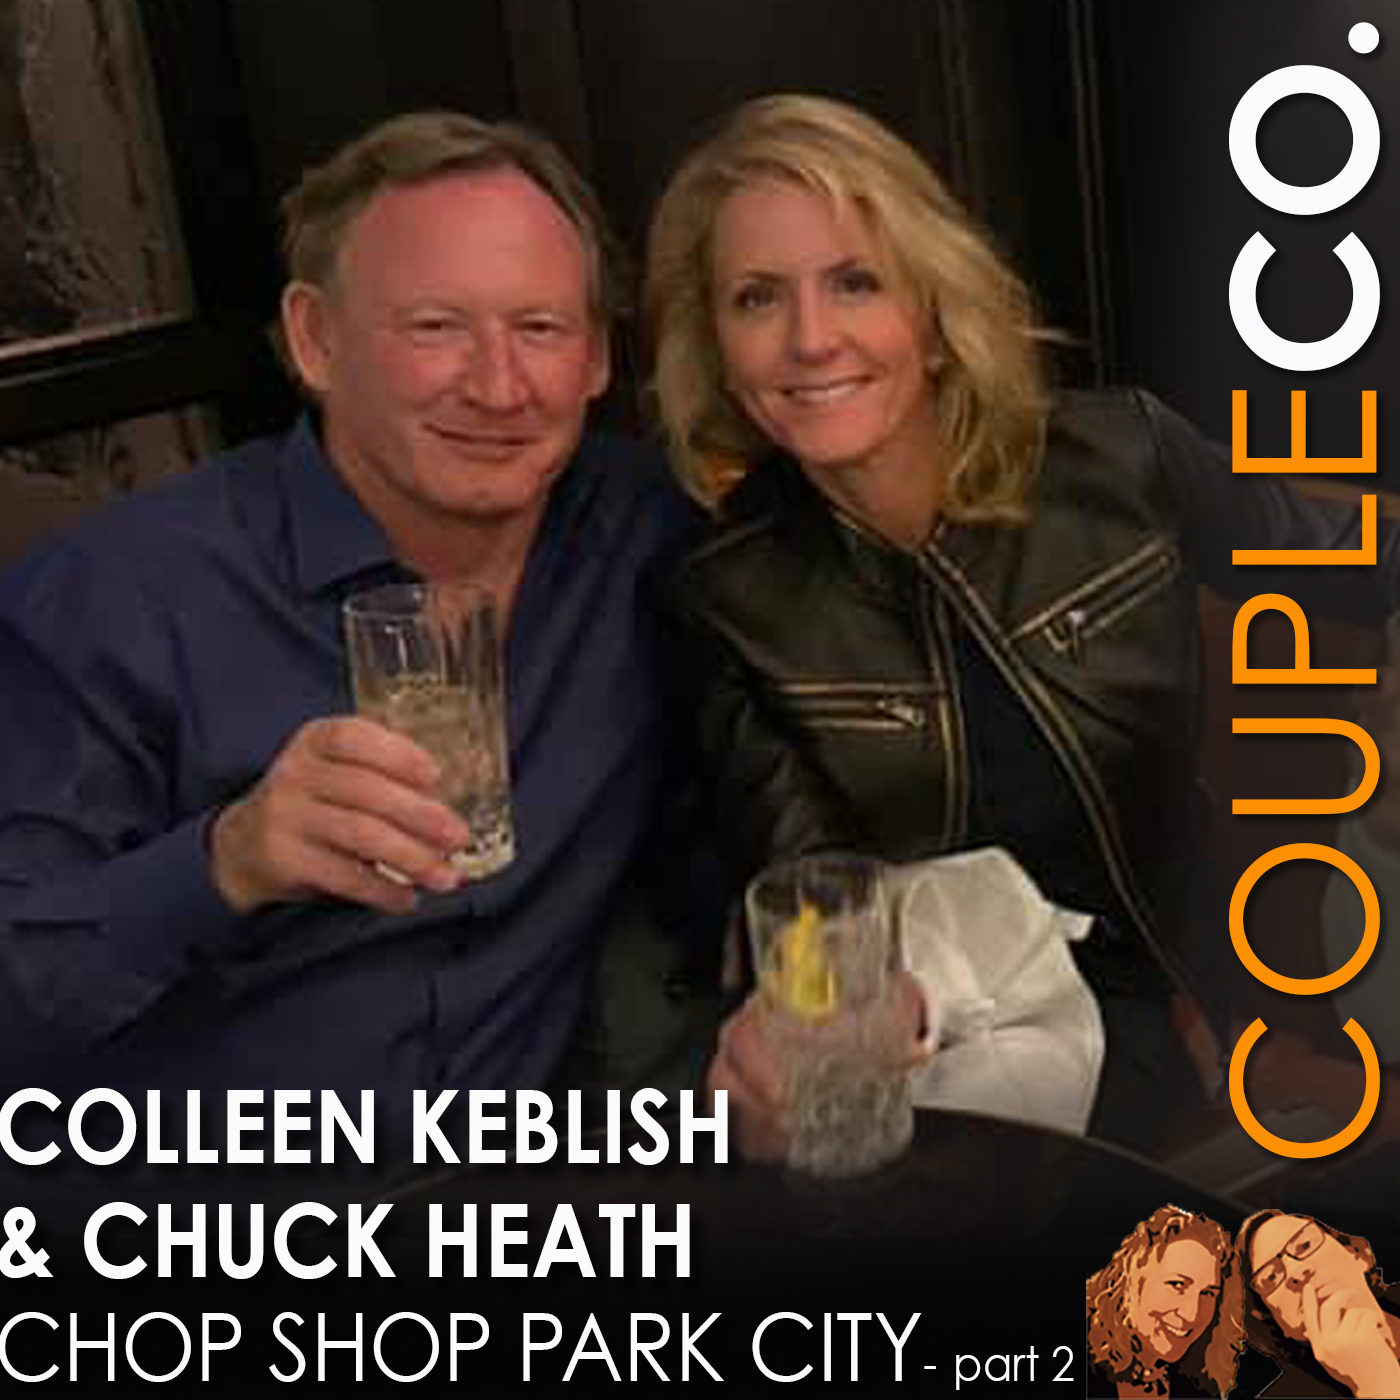 Bride of Fire & Knives: Chuck Heath and Colleen Keblish, Chop Shop Park City, Part 2